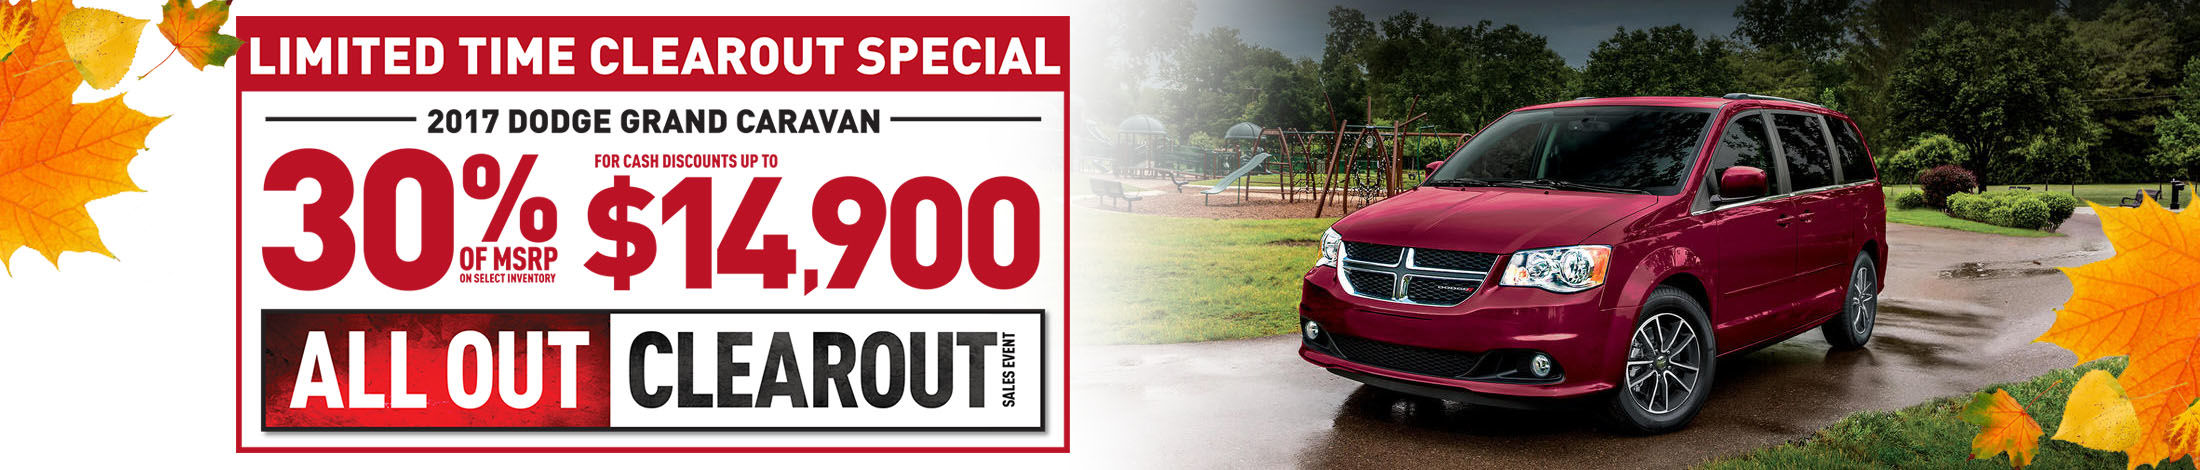 All out clearout sales event Caravan